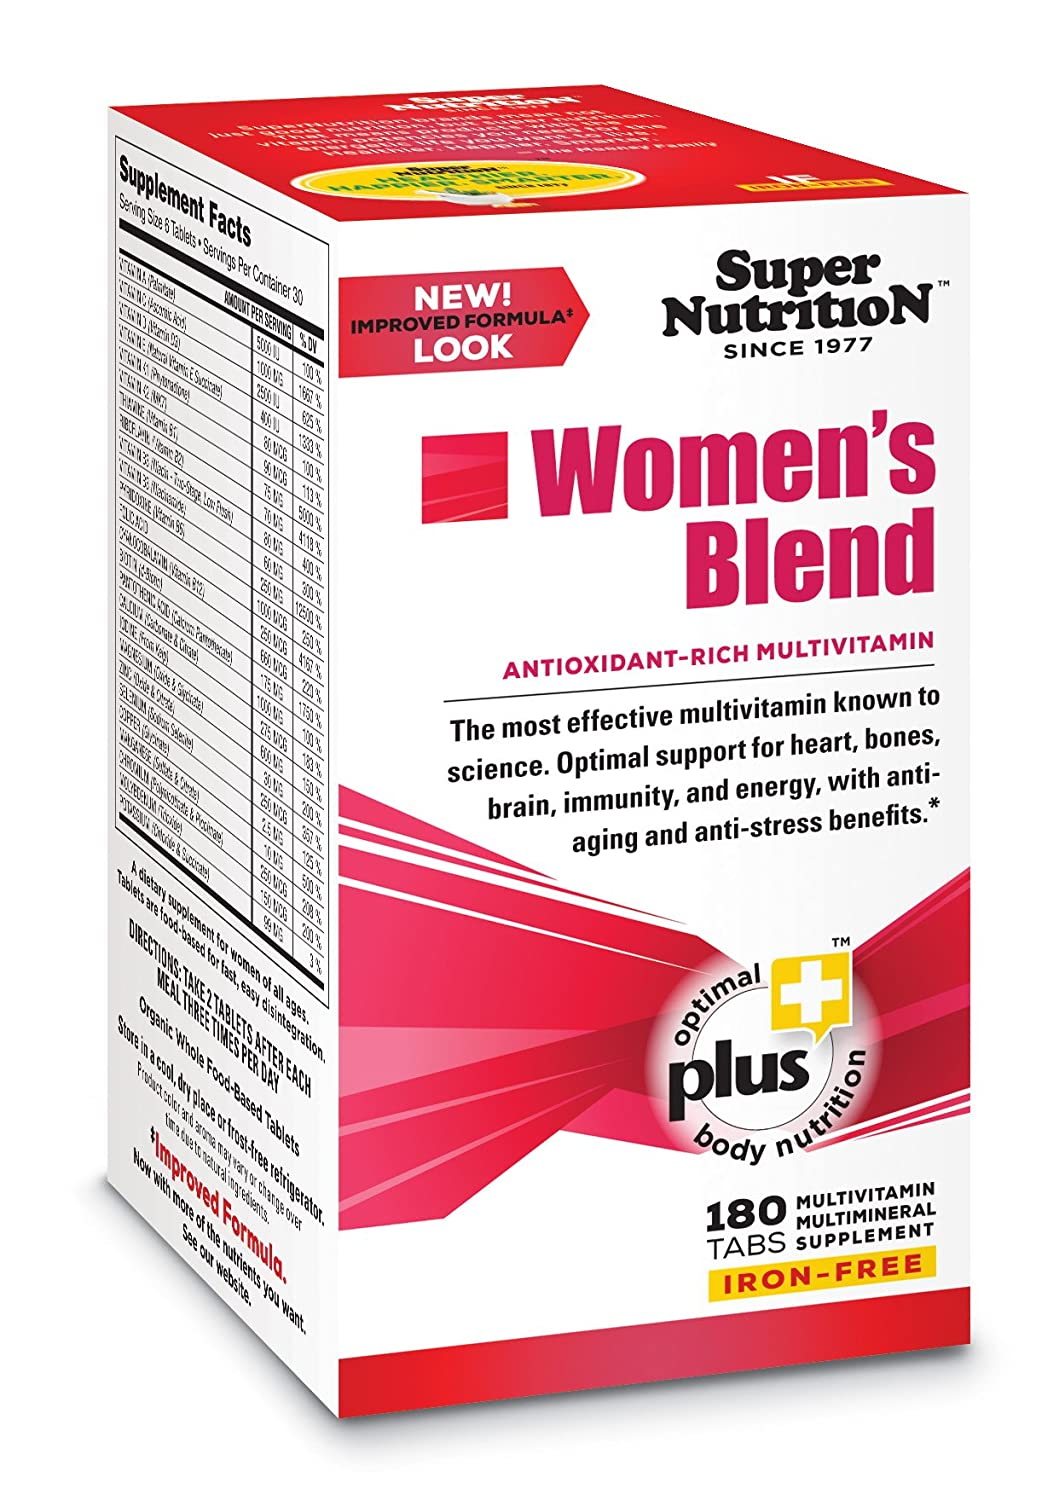 SuperNutrition, Women's Blend Multi-Vitamin, Iron-Free, High-Potency, 6/Day Tablets, 30 Day Supply